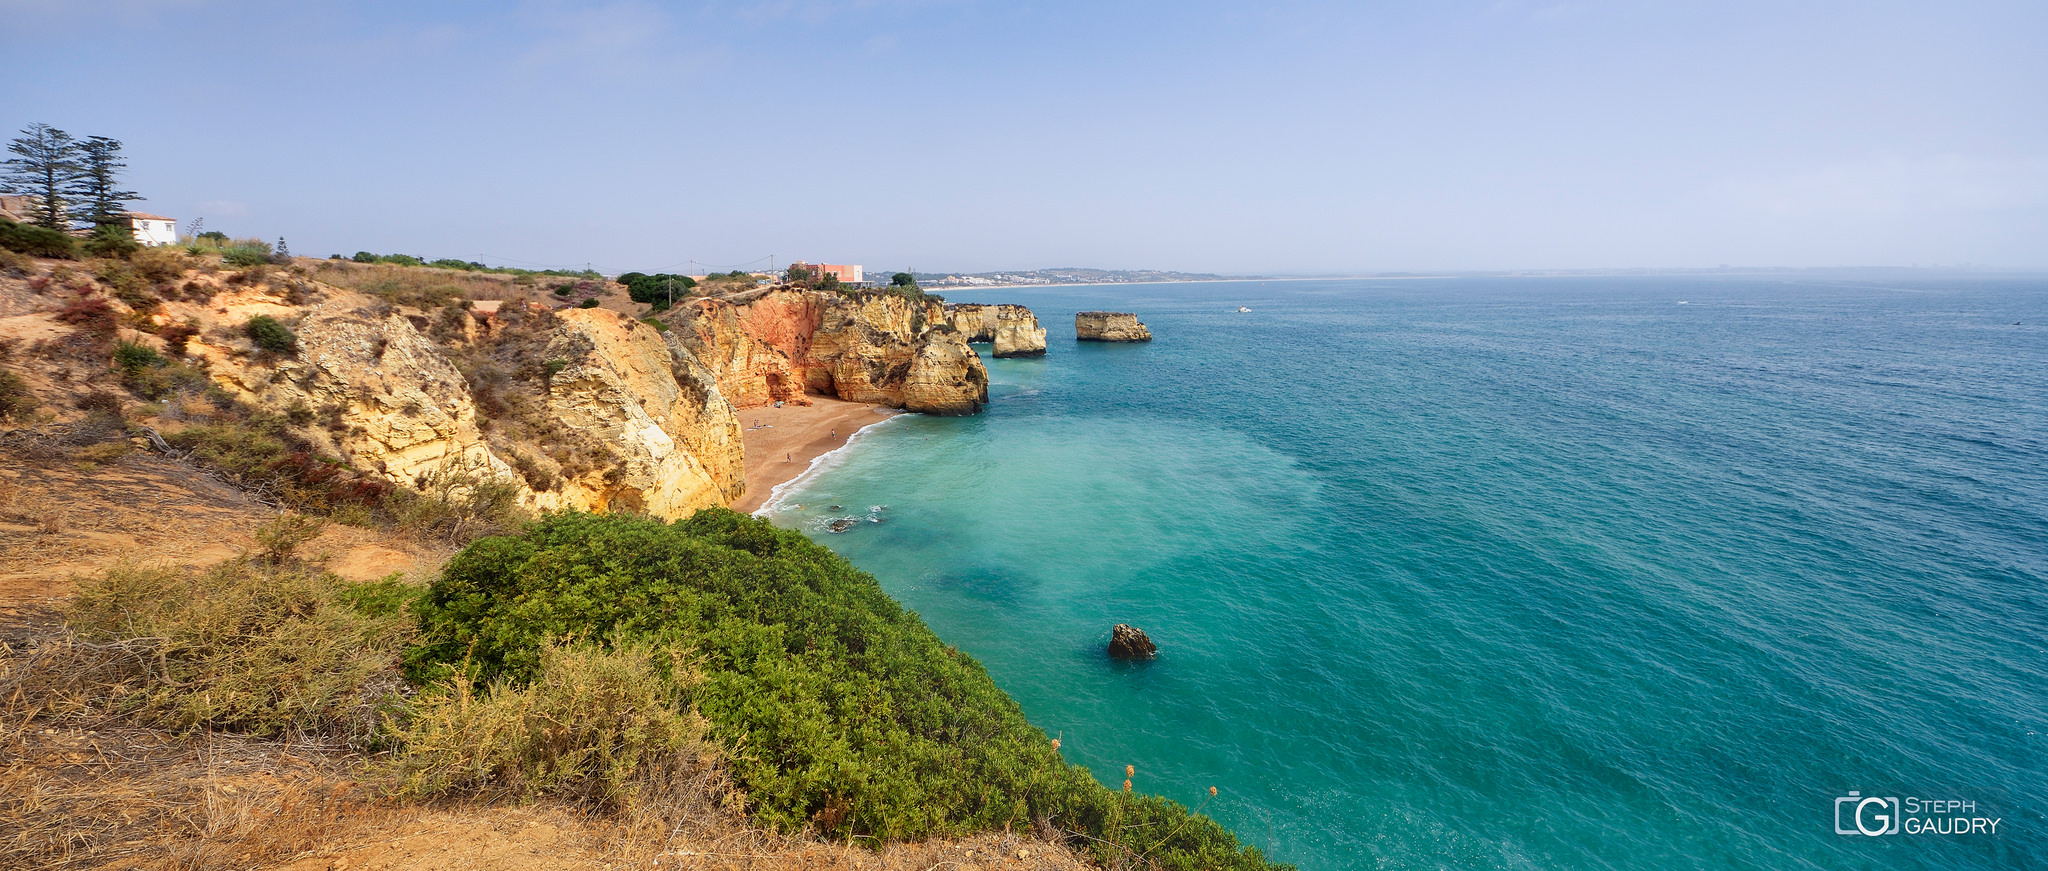 Les falaises d'Algarve [Click to start slideshow]